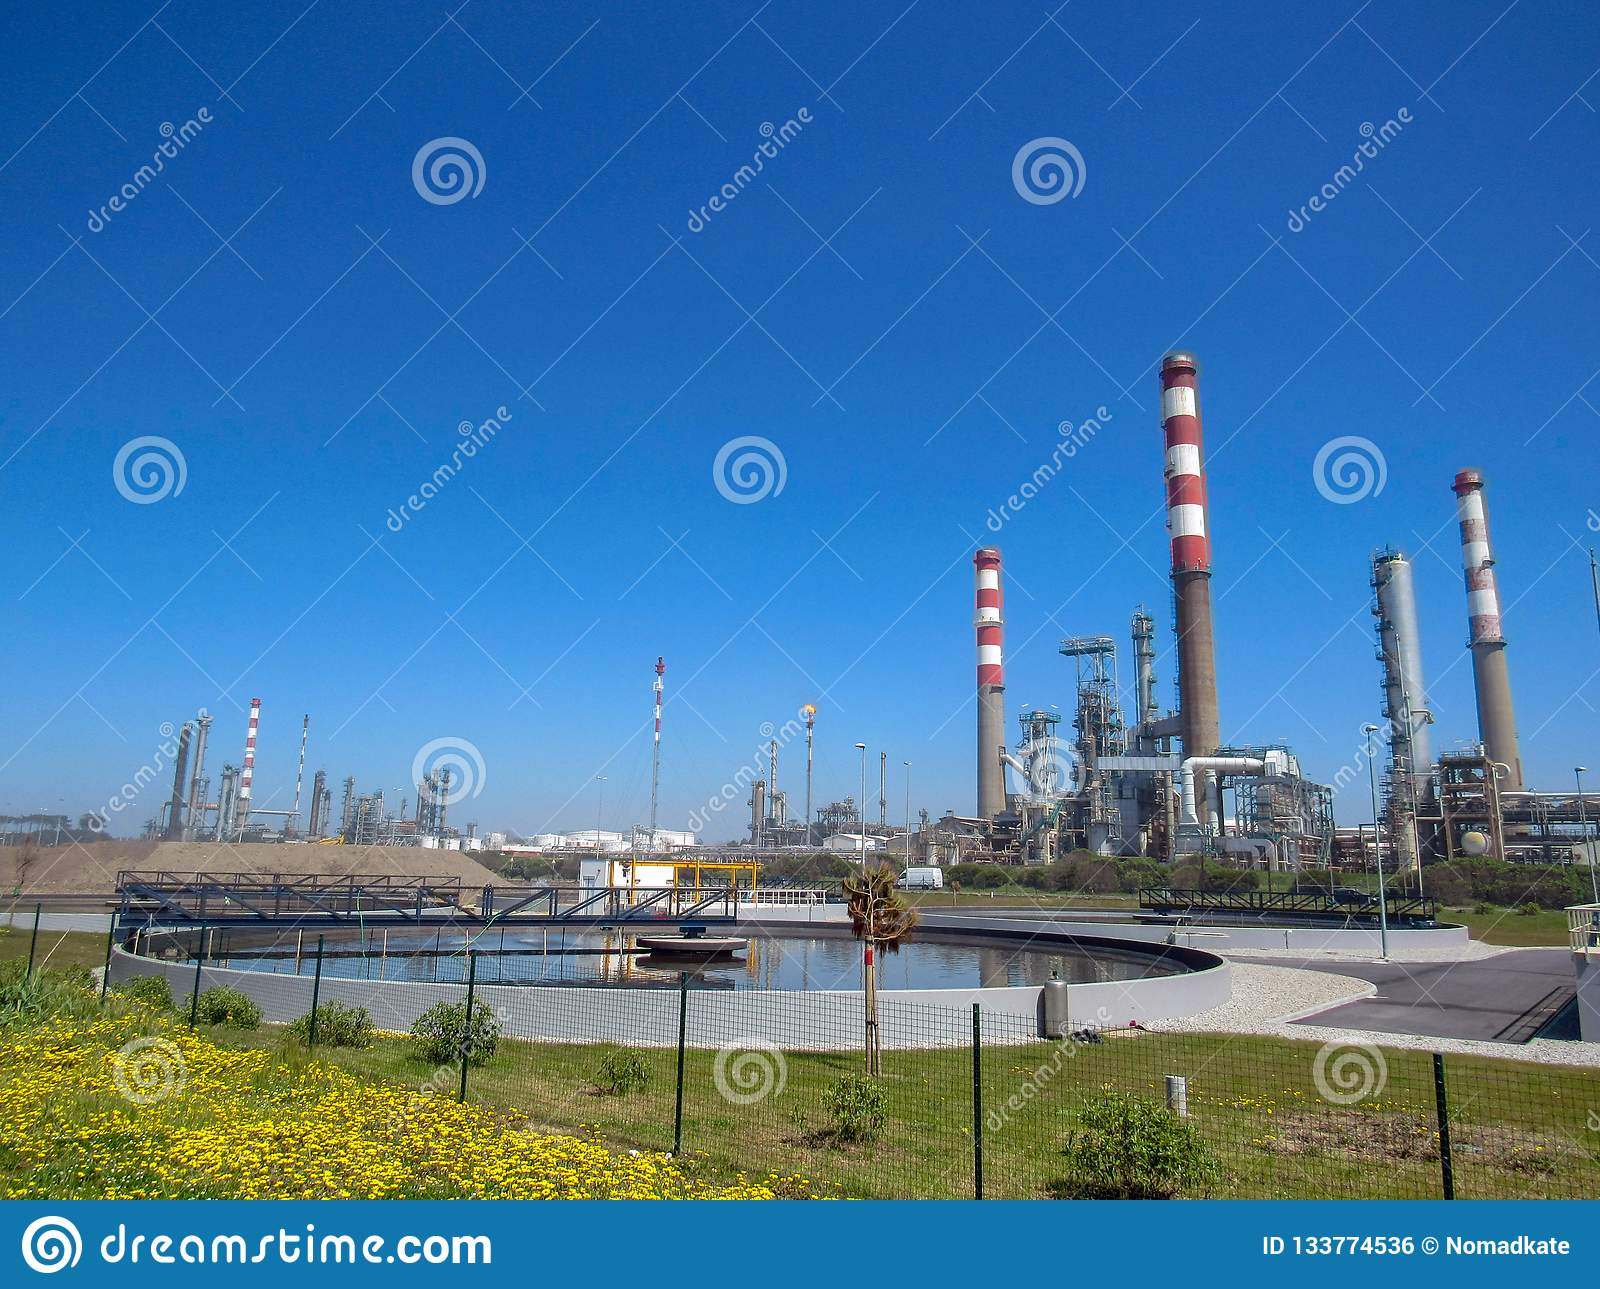 Industrial landscape with plant factory chimneys and beautiful spring nature landscape, Portugal, Europe